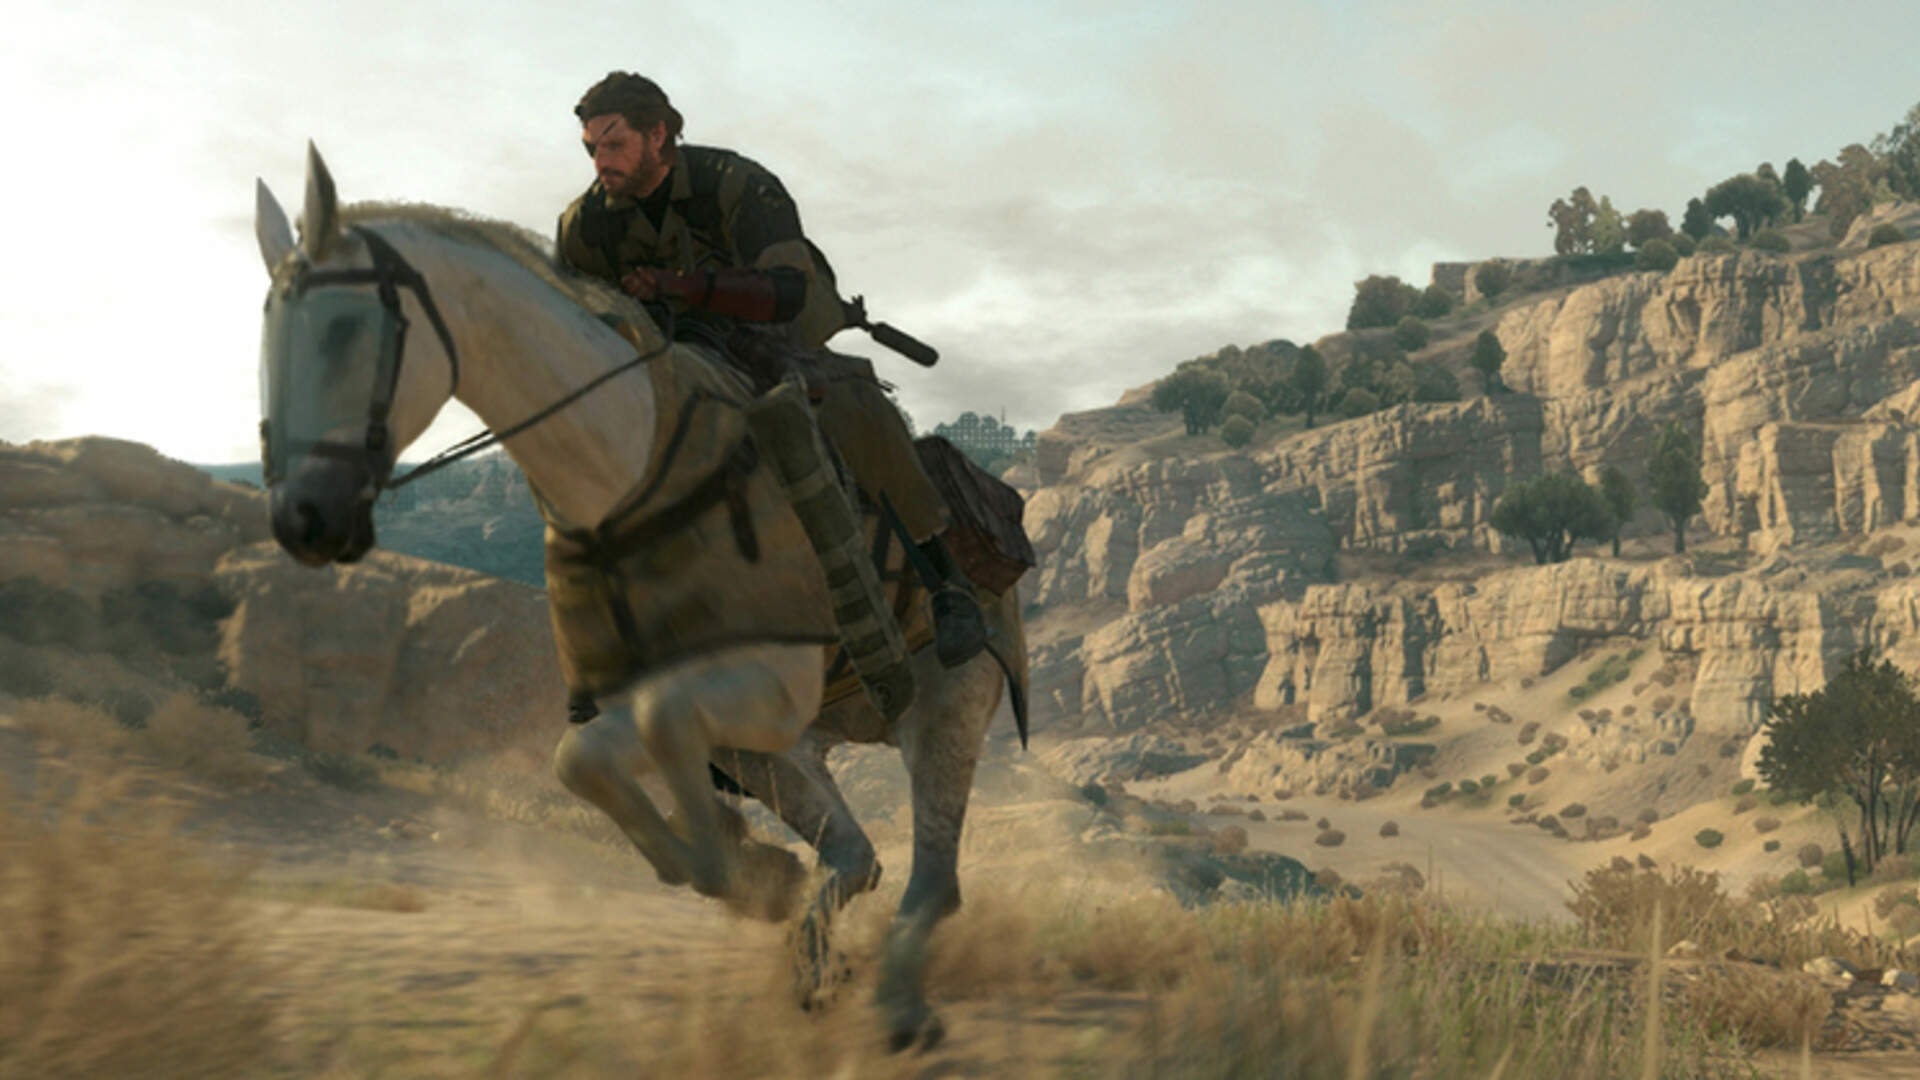 Don't Think You're a Metal Gear Solid Fan? The Phantom Pain Will Change Your Mind